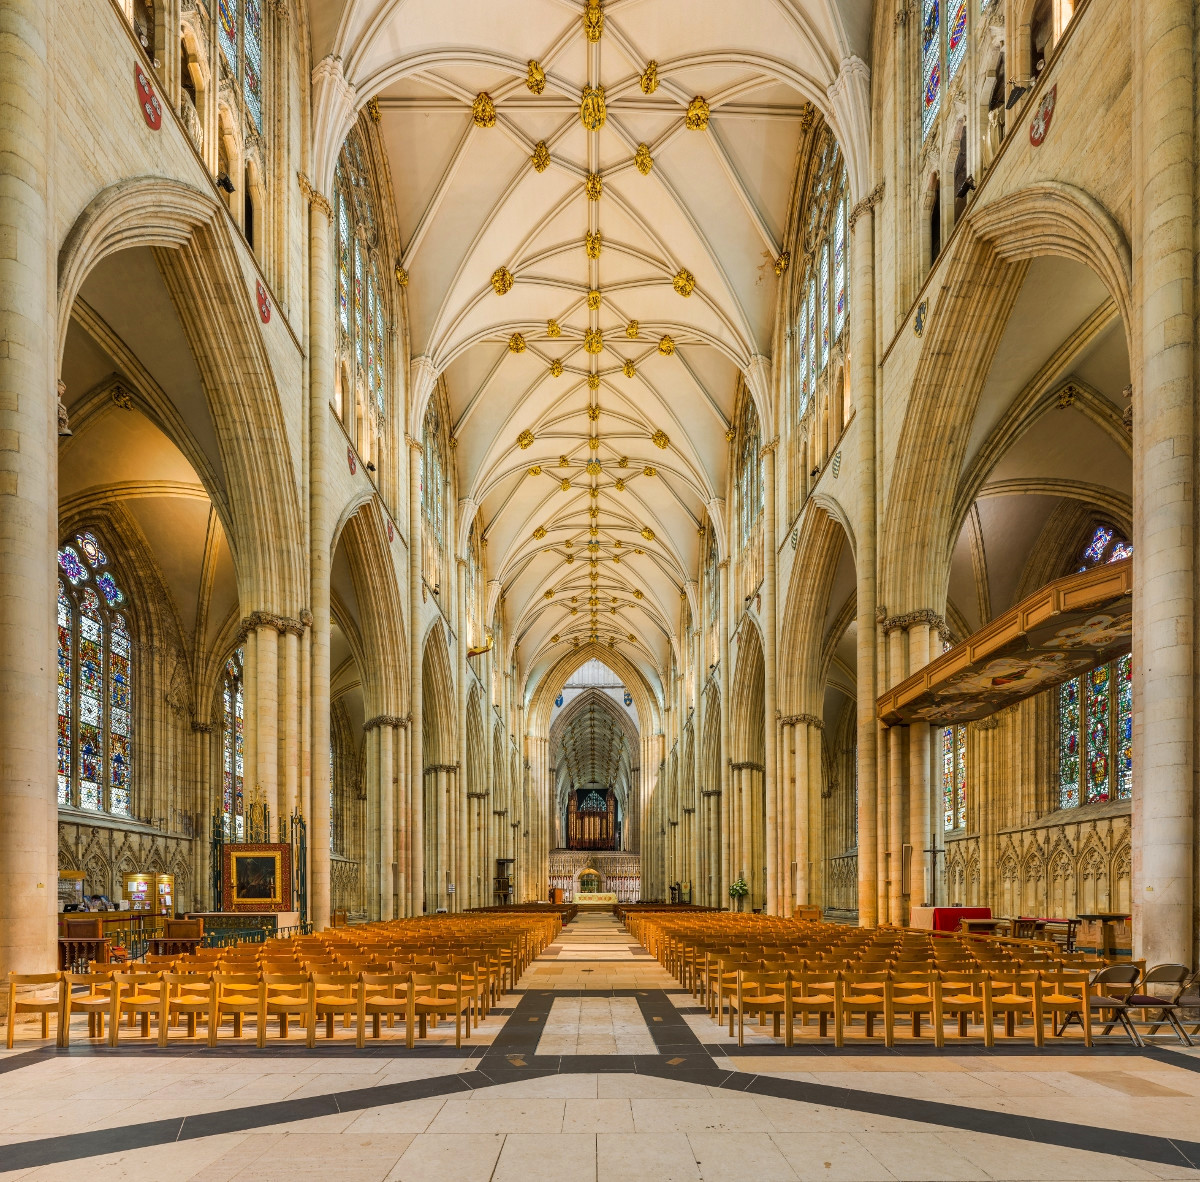 The nave of York Minster, David Iliff